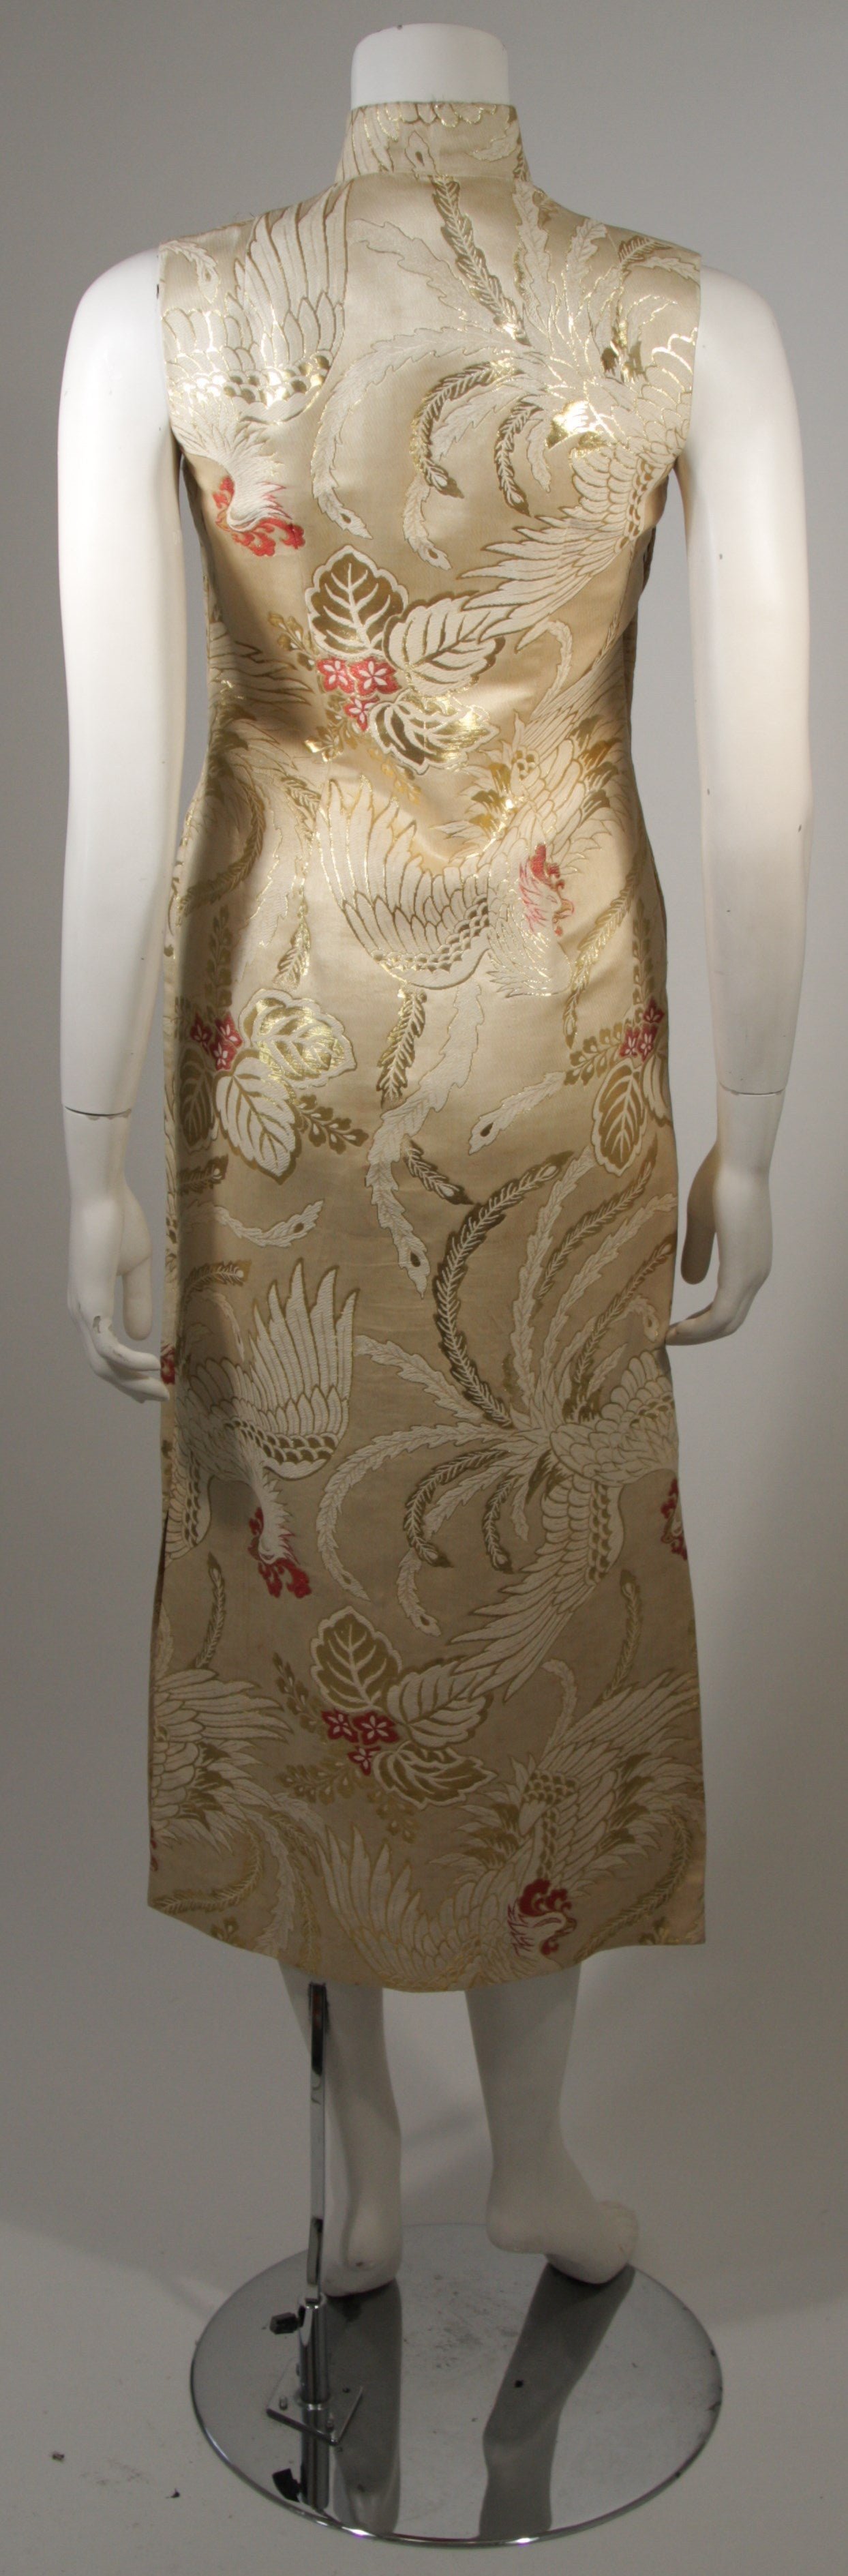 1950's Ivory and Gold Brocade Phoenix w. Red Flowers Cocktail Dress XS For Sale 3